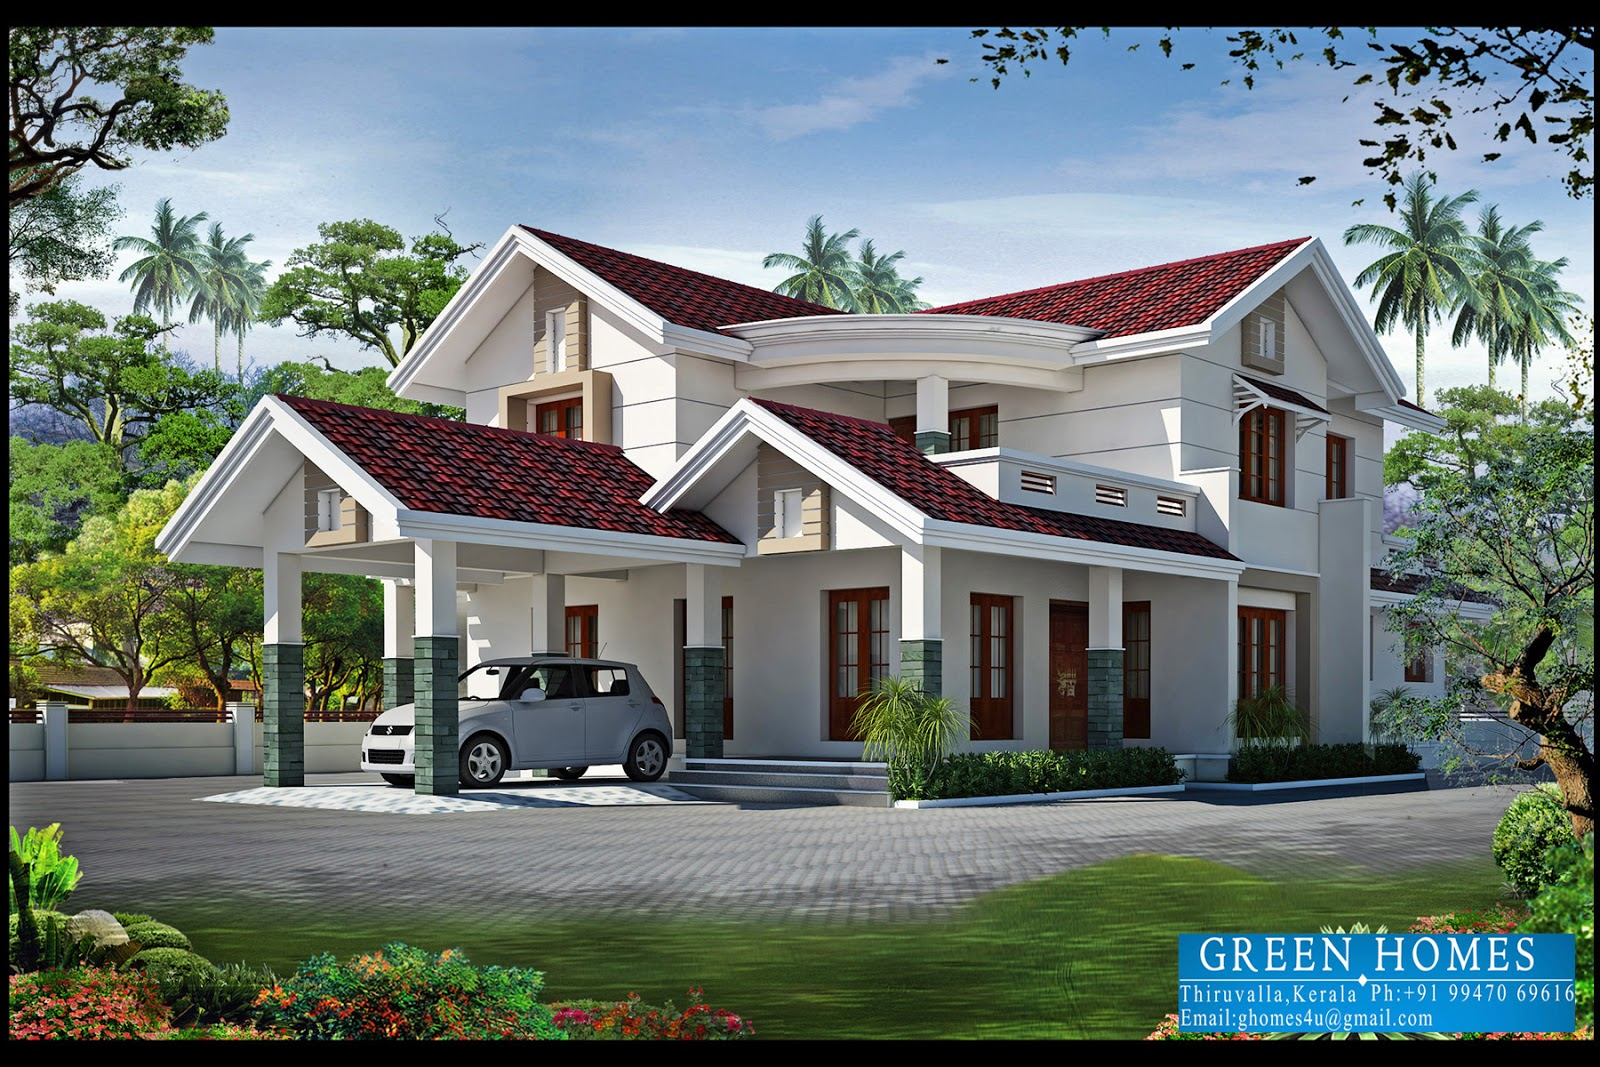 green homes december green homes designs epic home designs